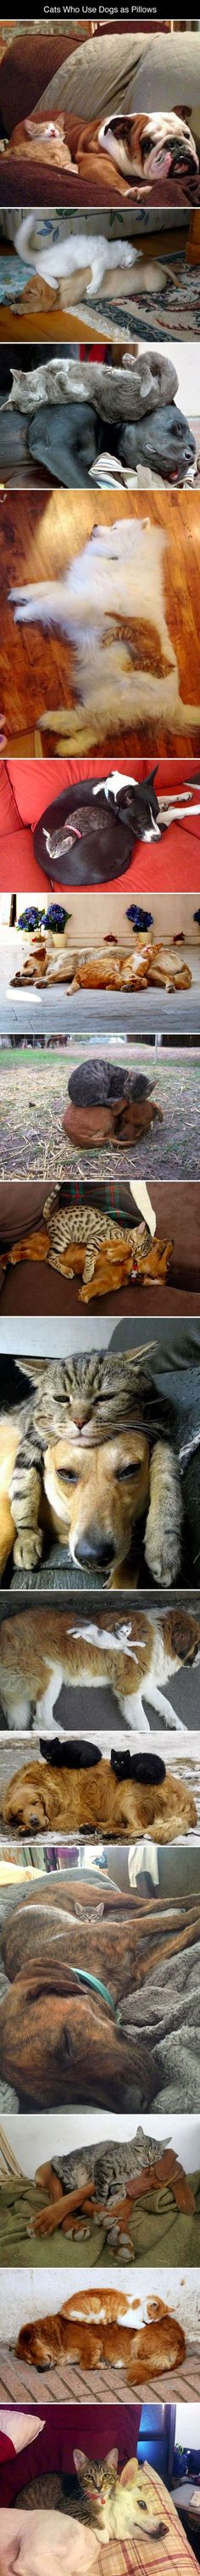 Cats Who Use Dogs As Pillows cute animals dogs cat cats adorable dog animal kittens pets kitten hilarious funny pictures funny animals funny cats funny images